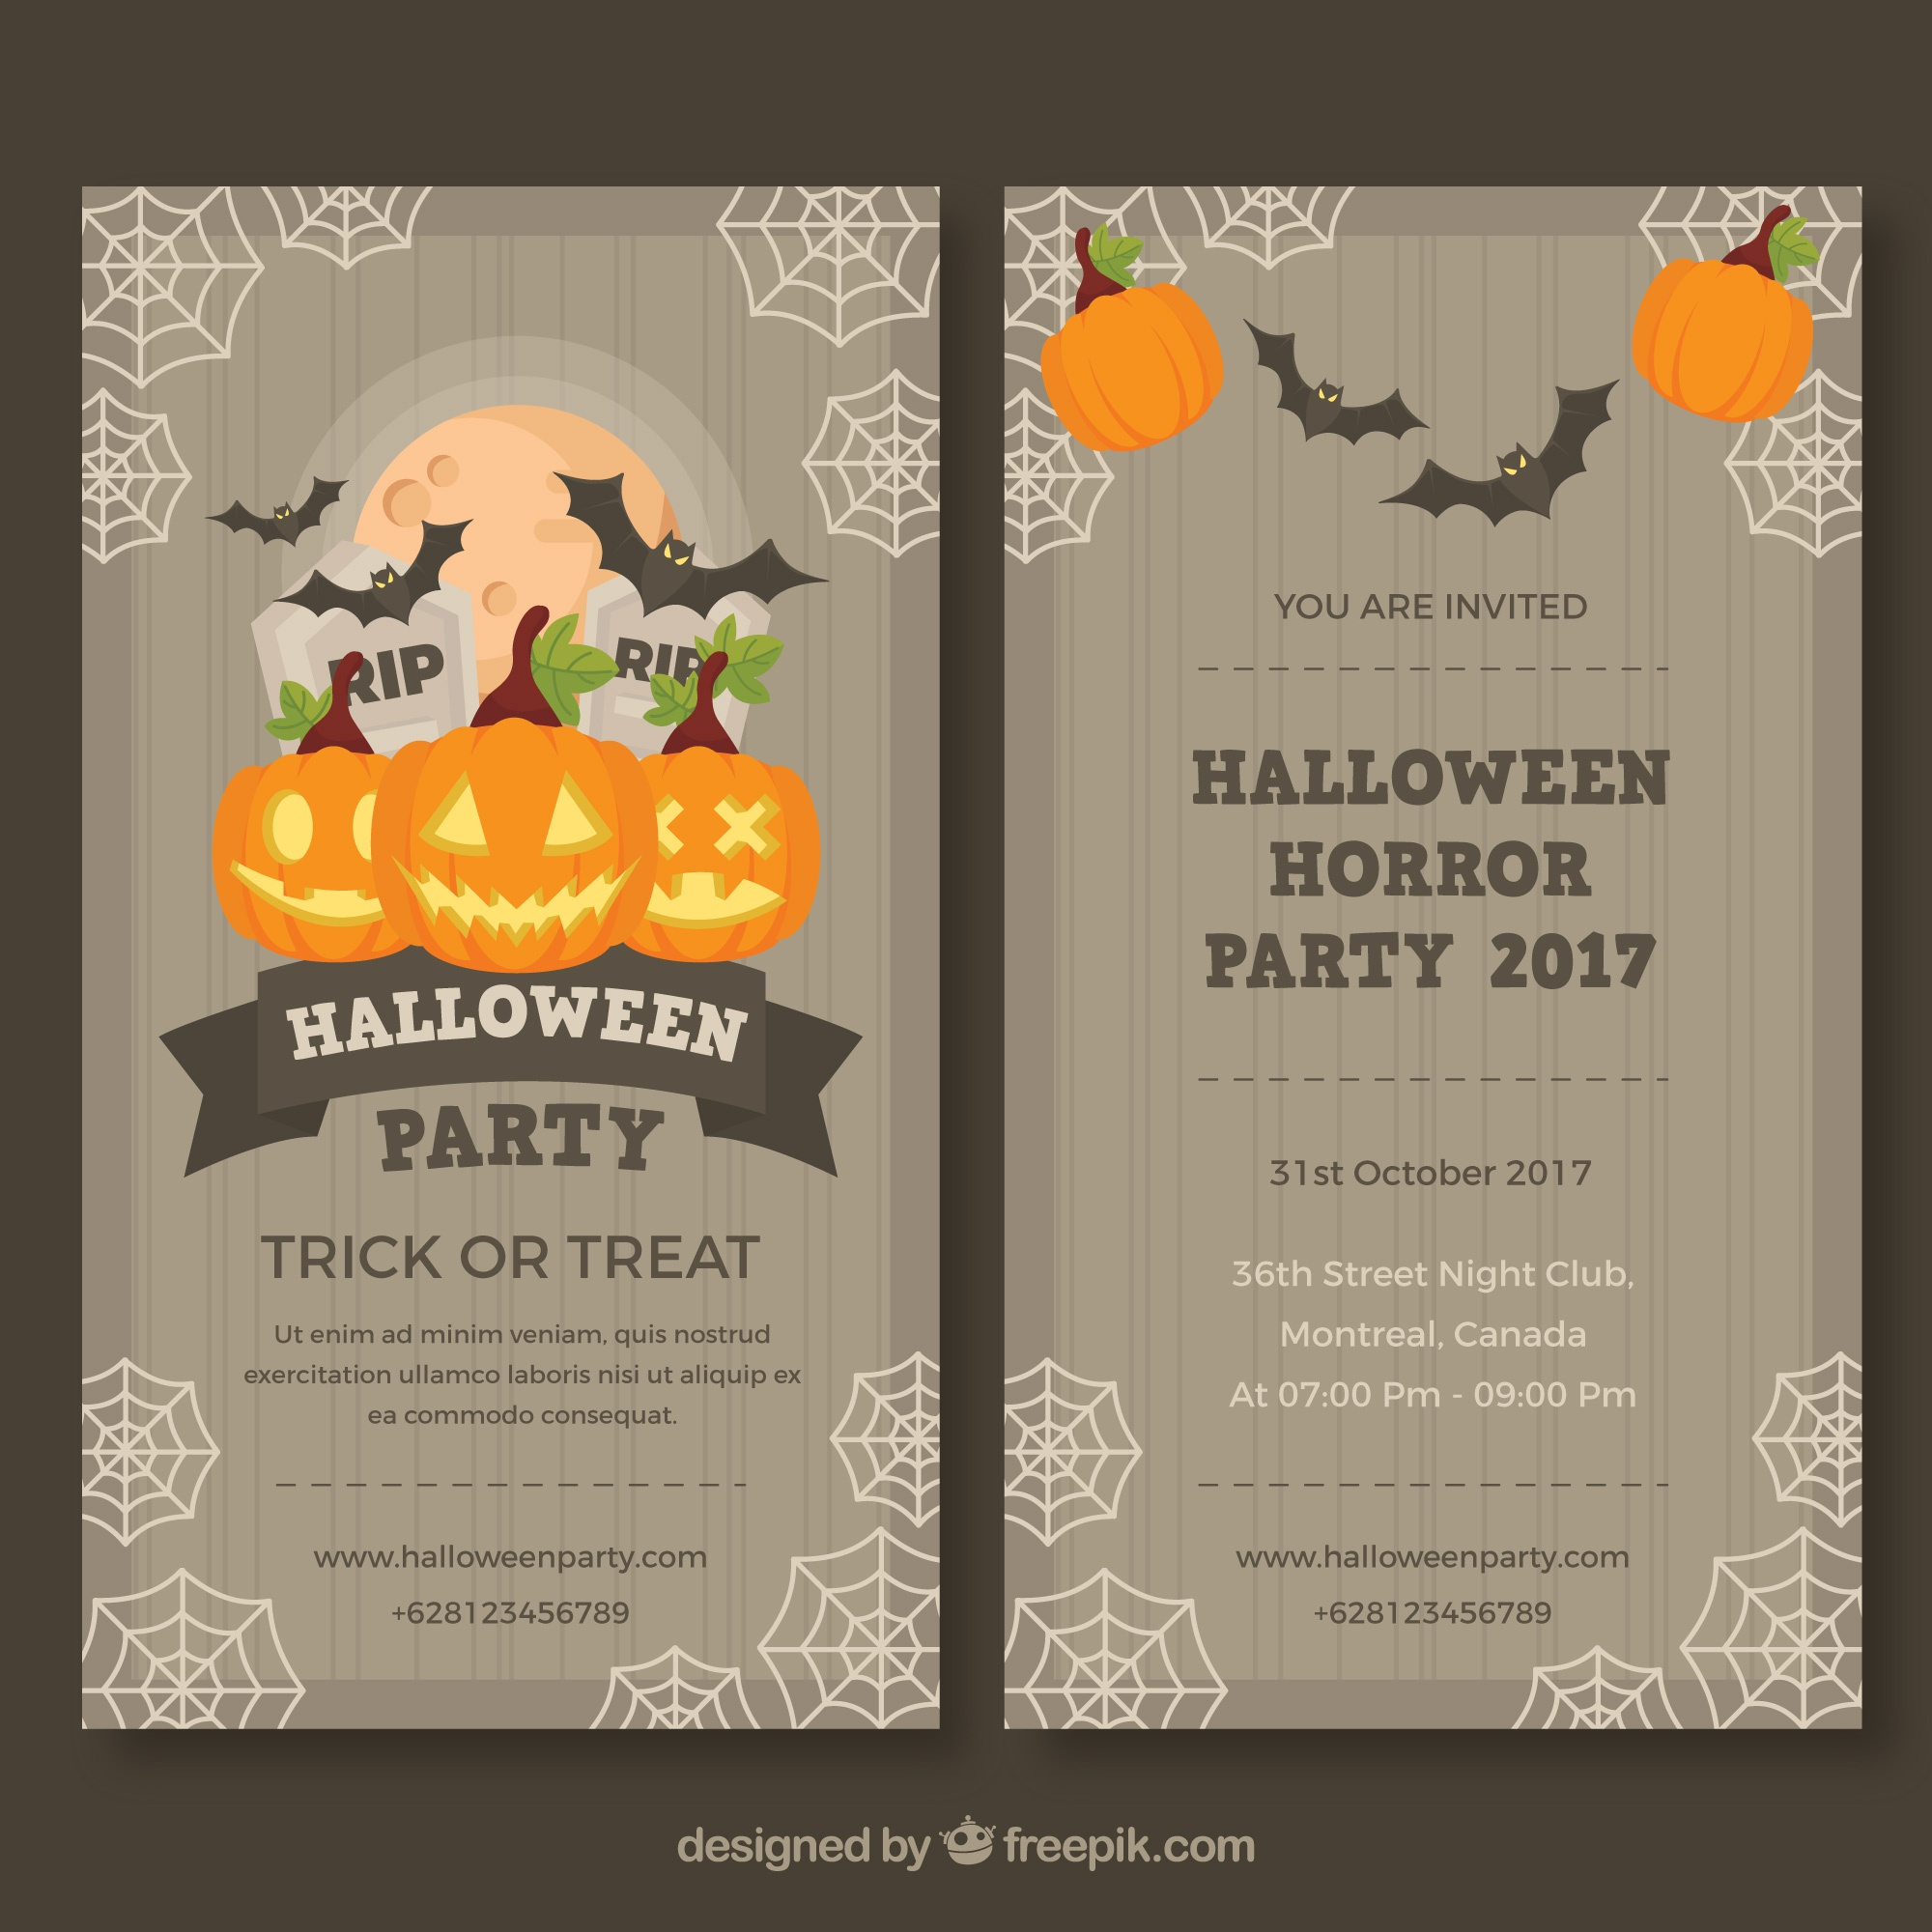 Halloween party flyer met vintage stijl